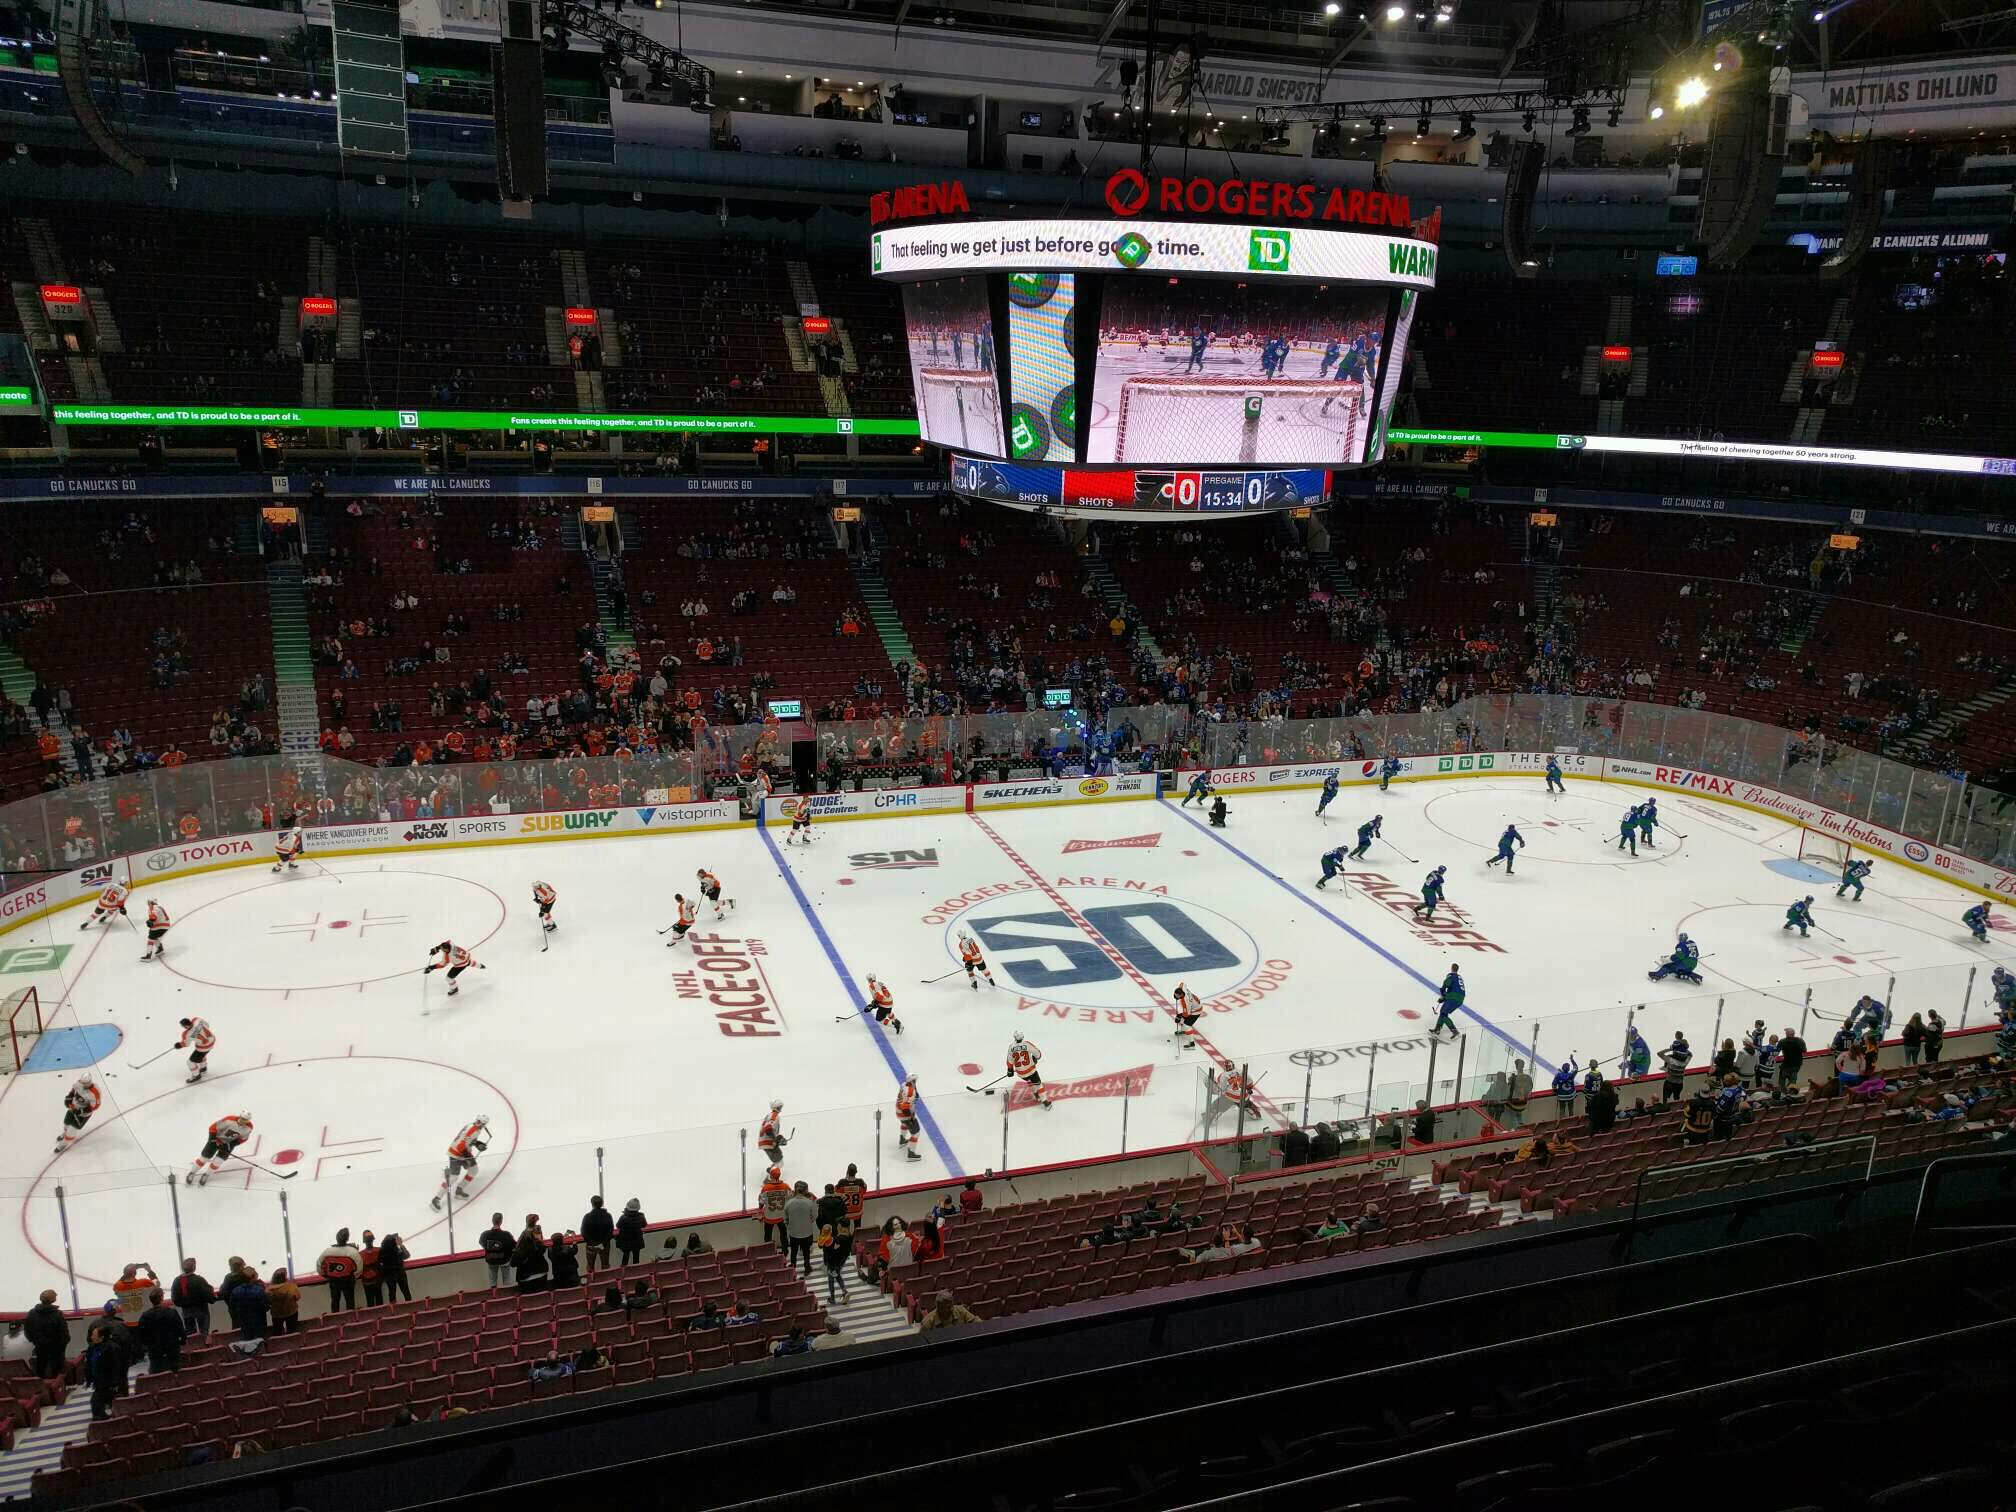 Rogers Arena Section 309 Row 6 Seat 107